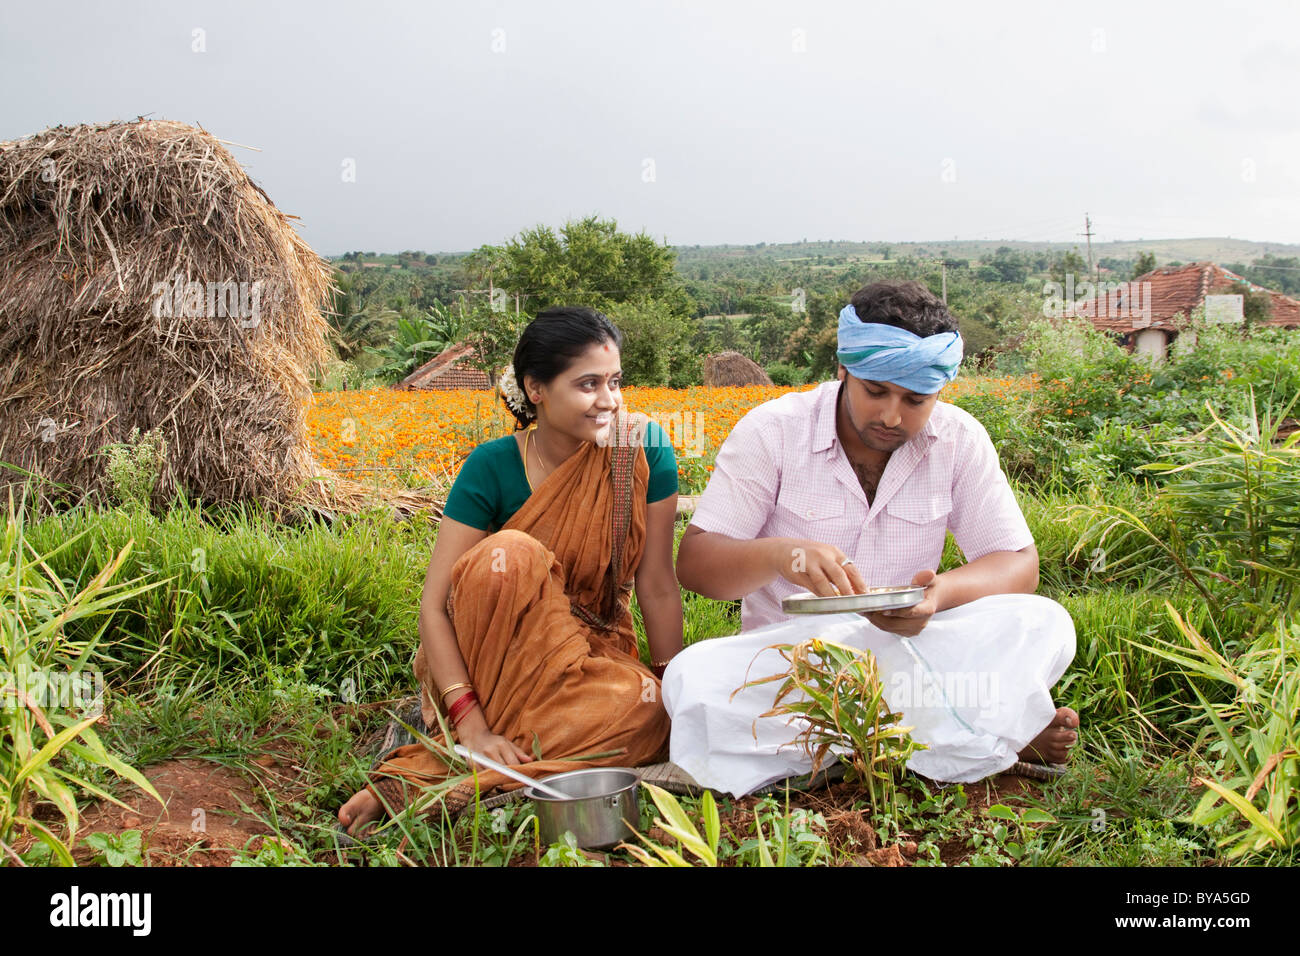 Rural man having lunch as his wife looks on - Stock Image